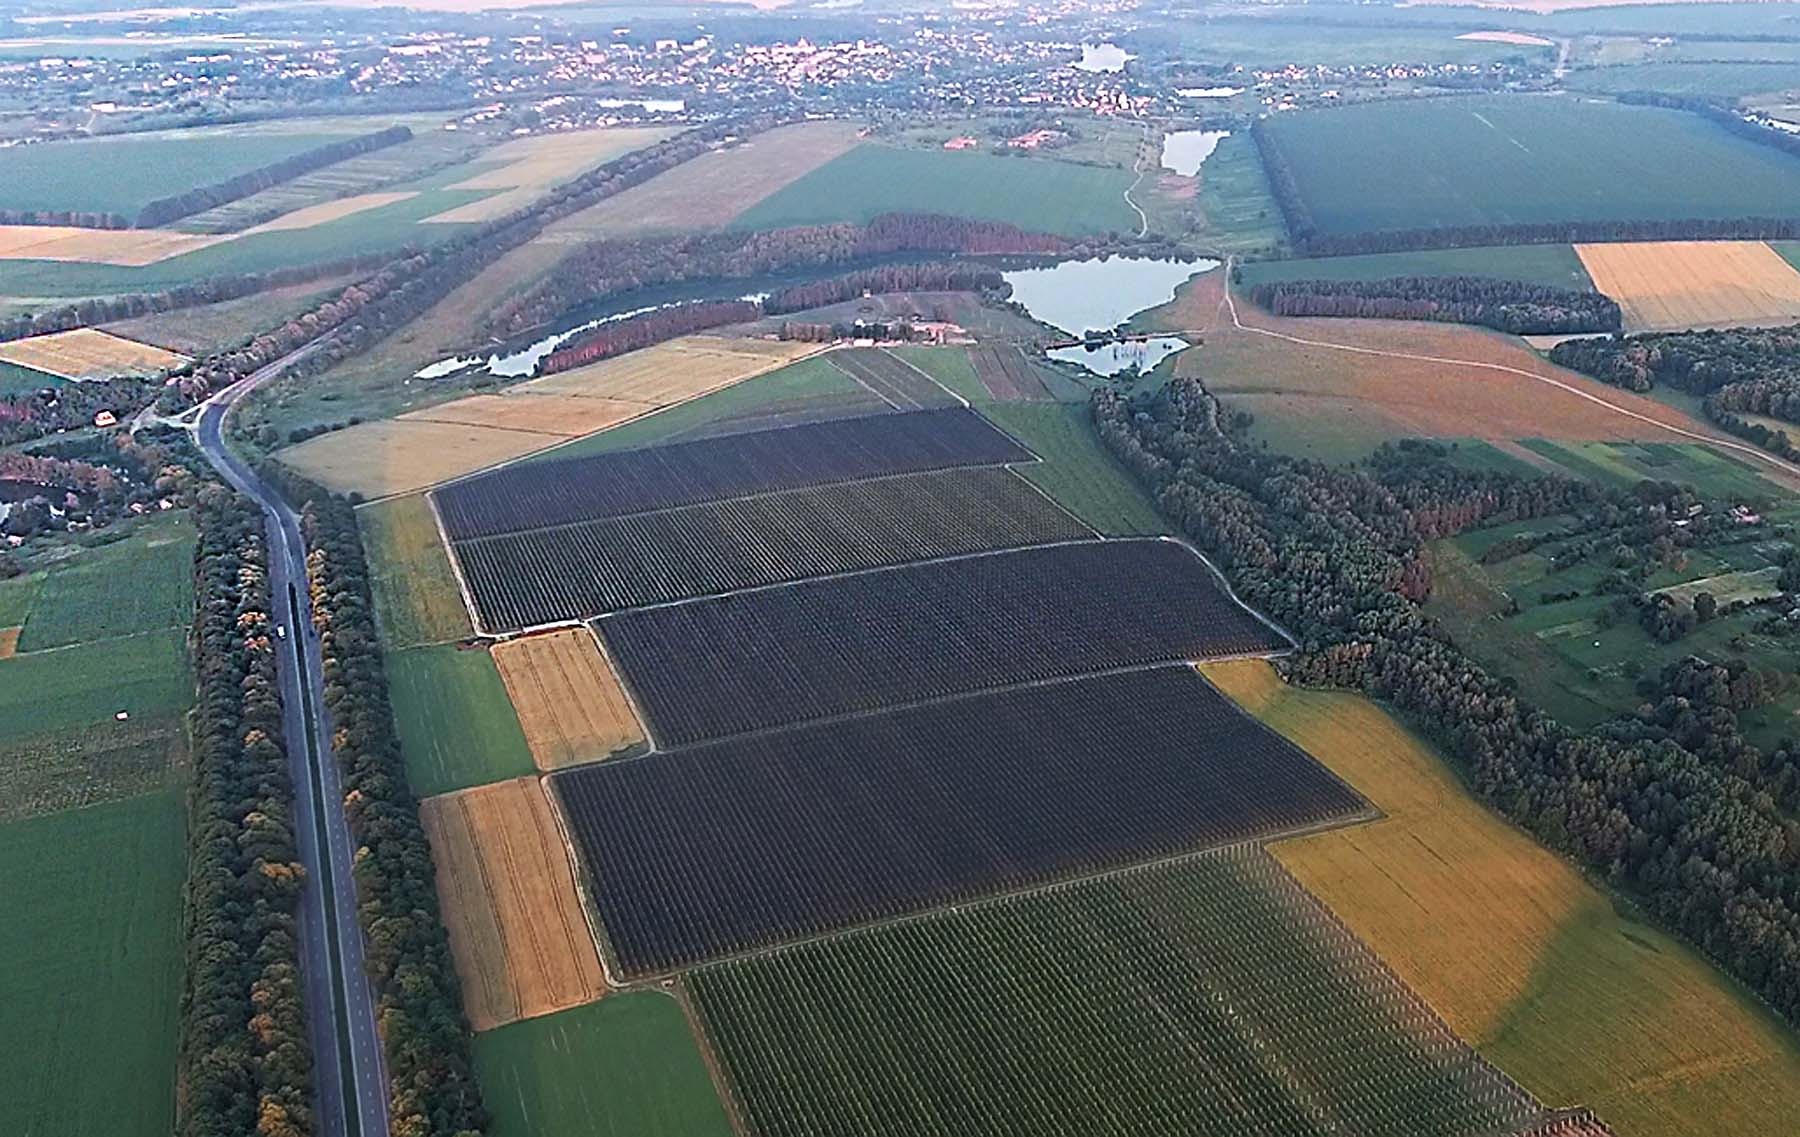 Farm from the air